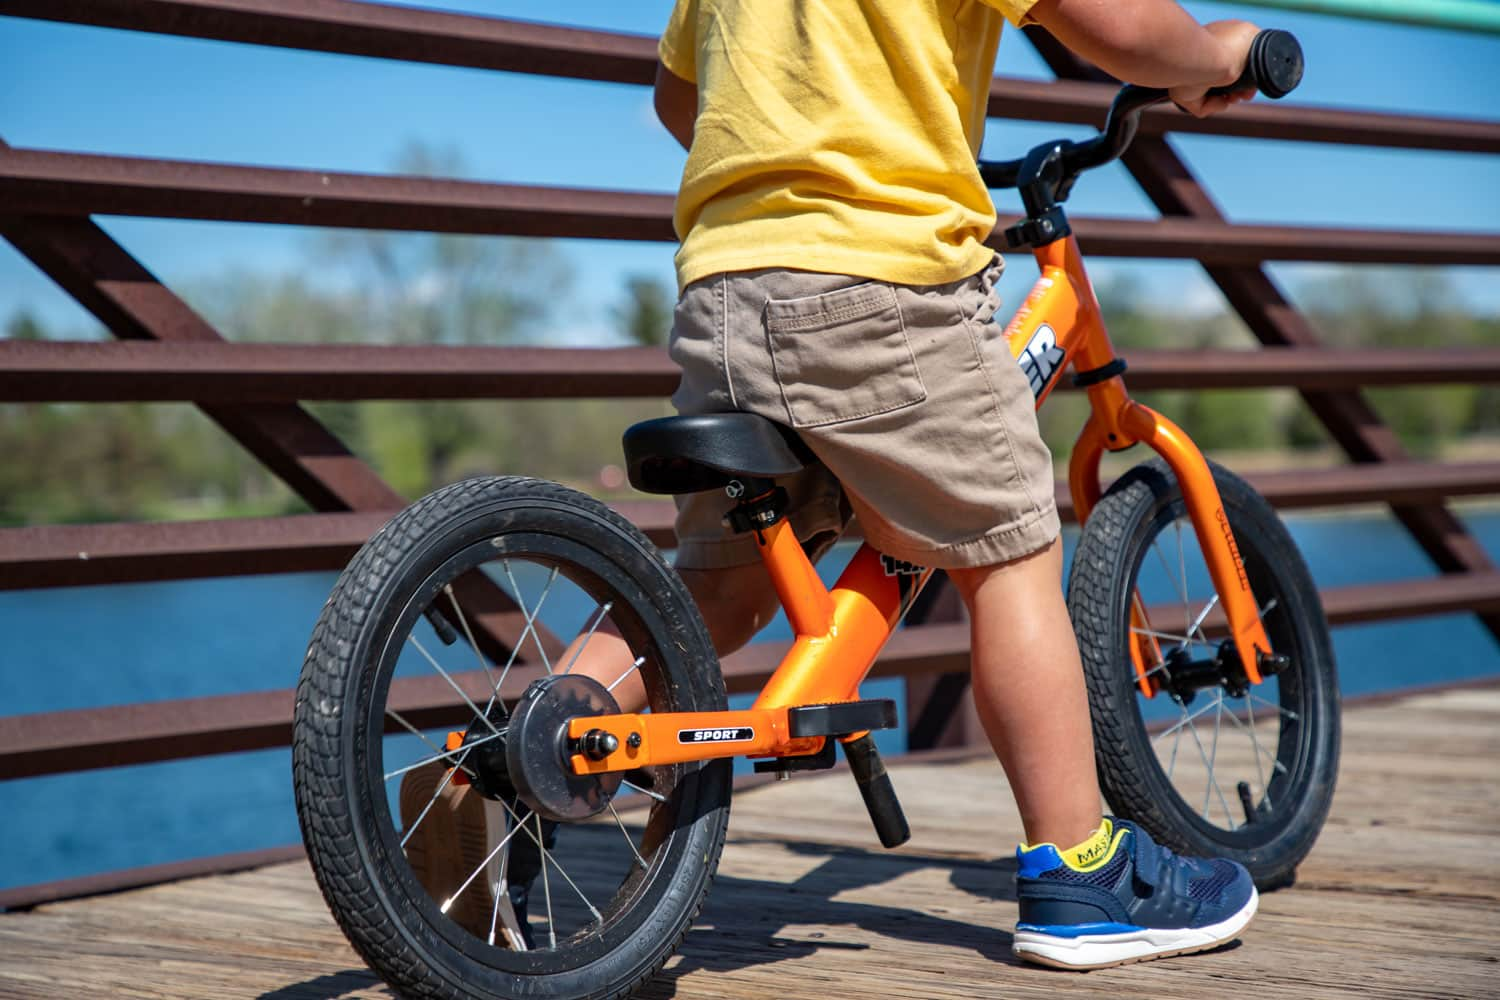 Close-up view of a Totally Tangerine Strider 14x balance bike with a body of water in the background